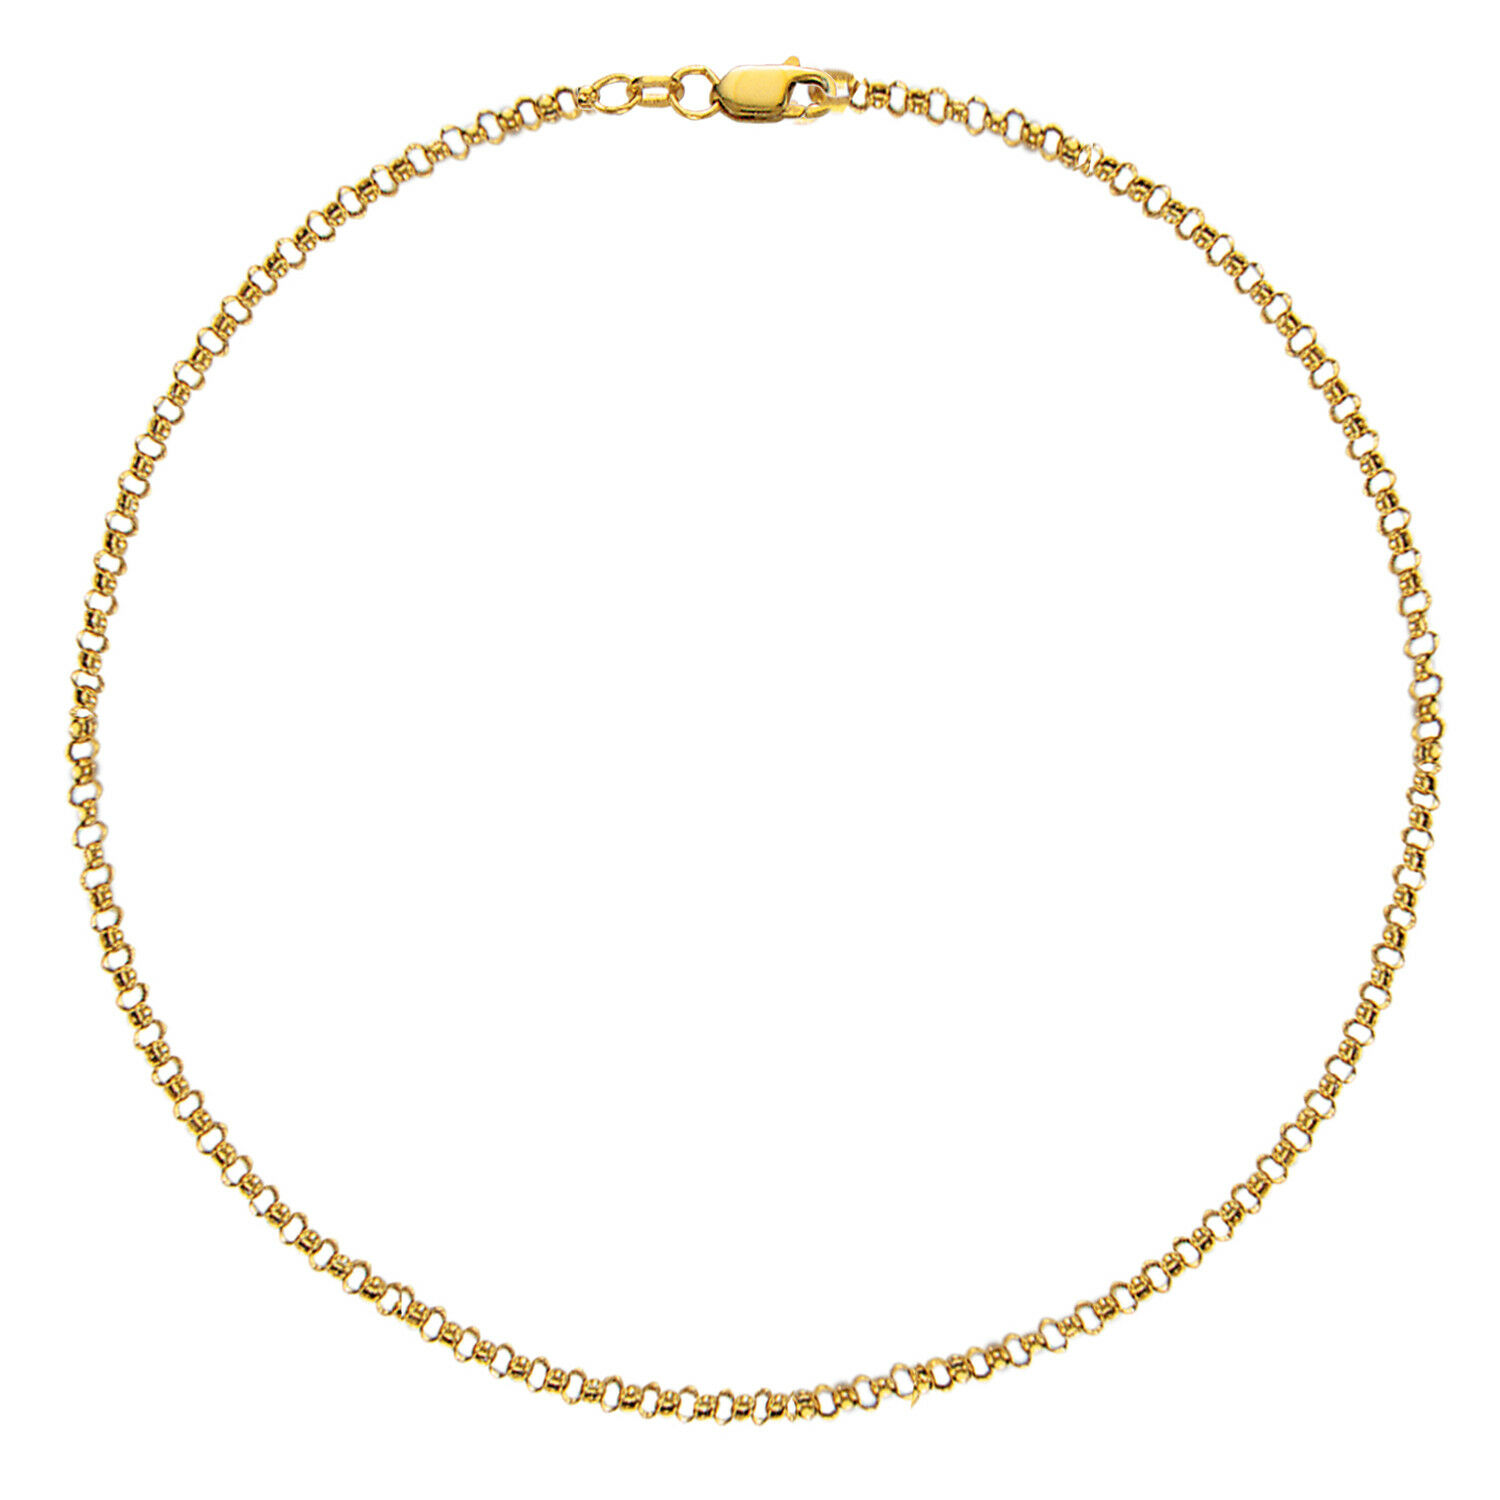 10k Solid gold Rolo Chain Ankle Anklet 10 Inches (Yellow and White)